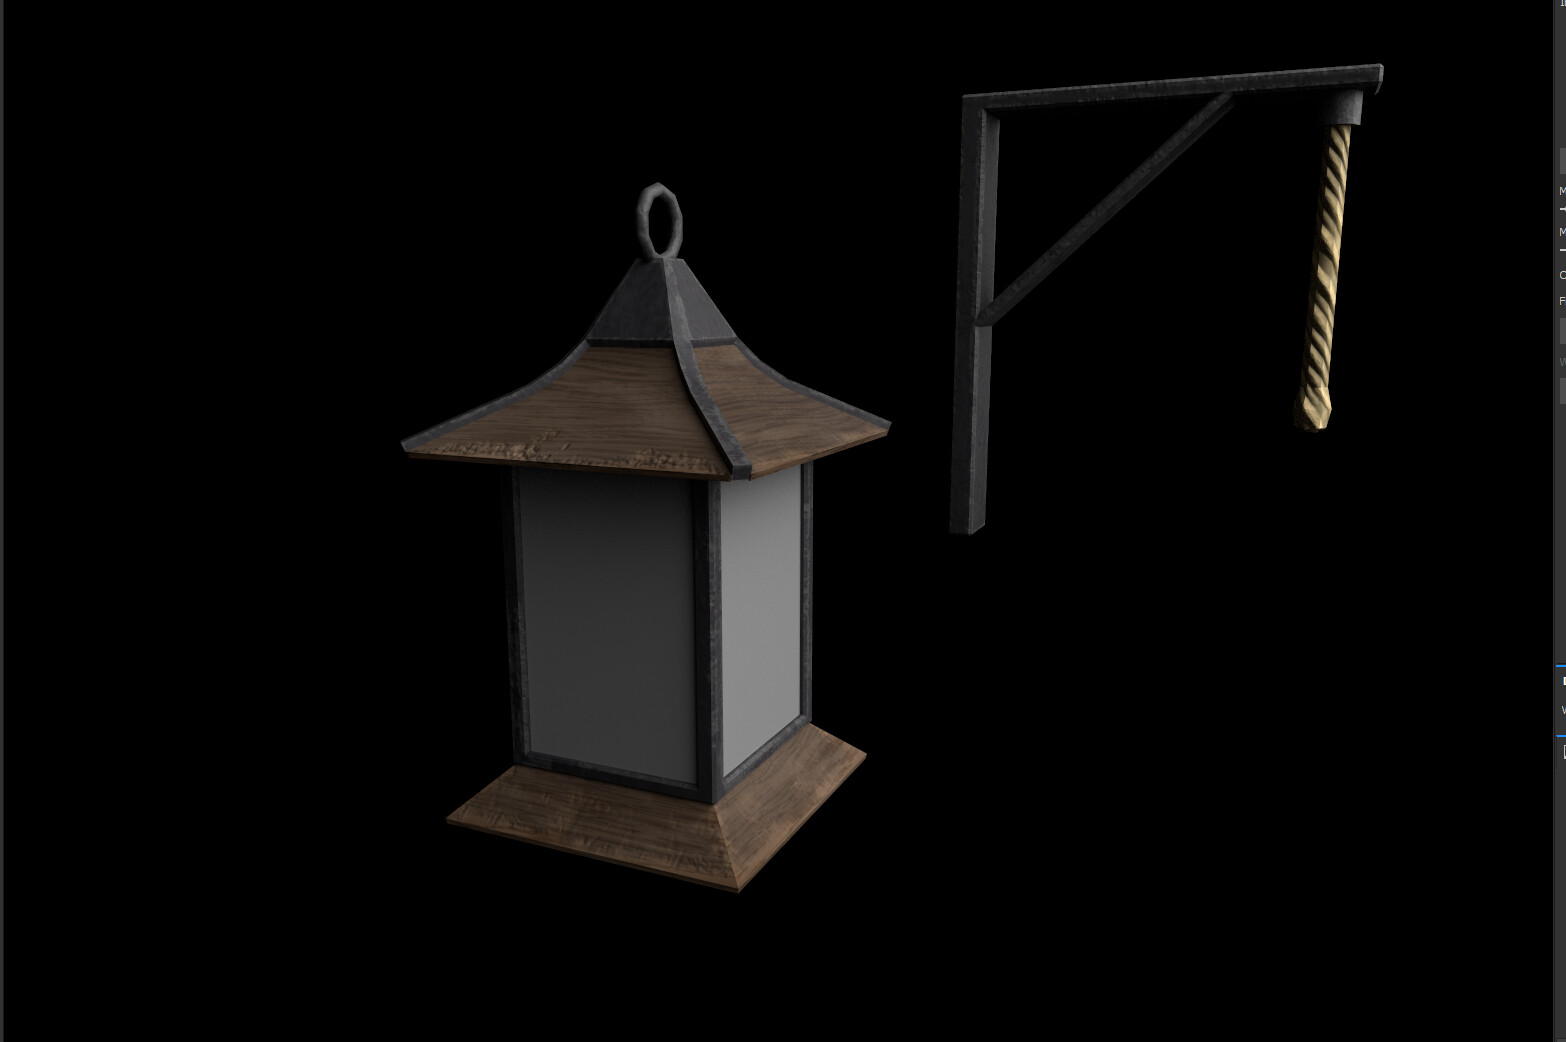 Textures for the lantern taken out of Substance Painter.